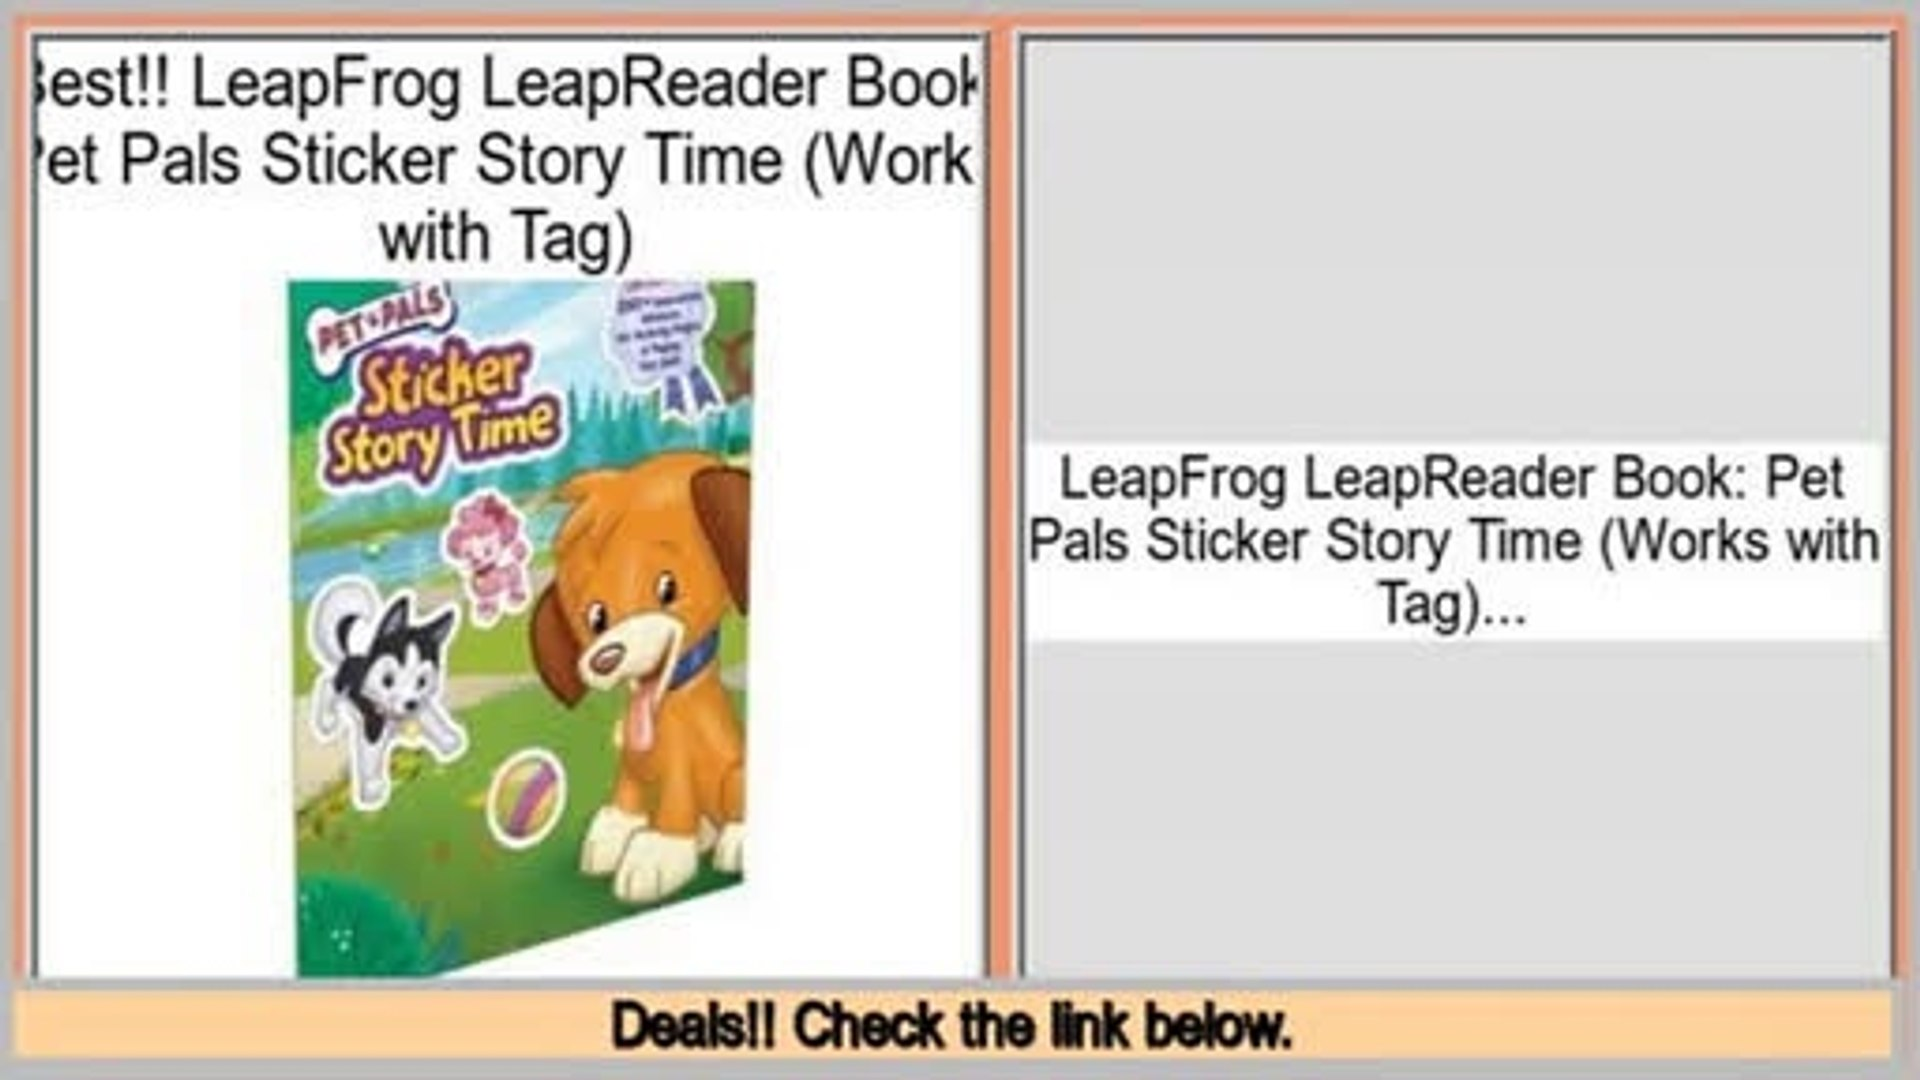 Best Deals LeapFrog LeapReader Book: Pet Pals Sticker Story Time (Works  with Tag)